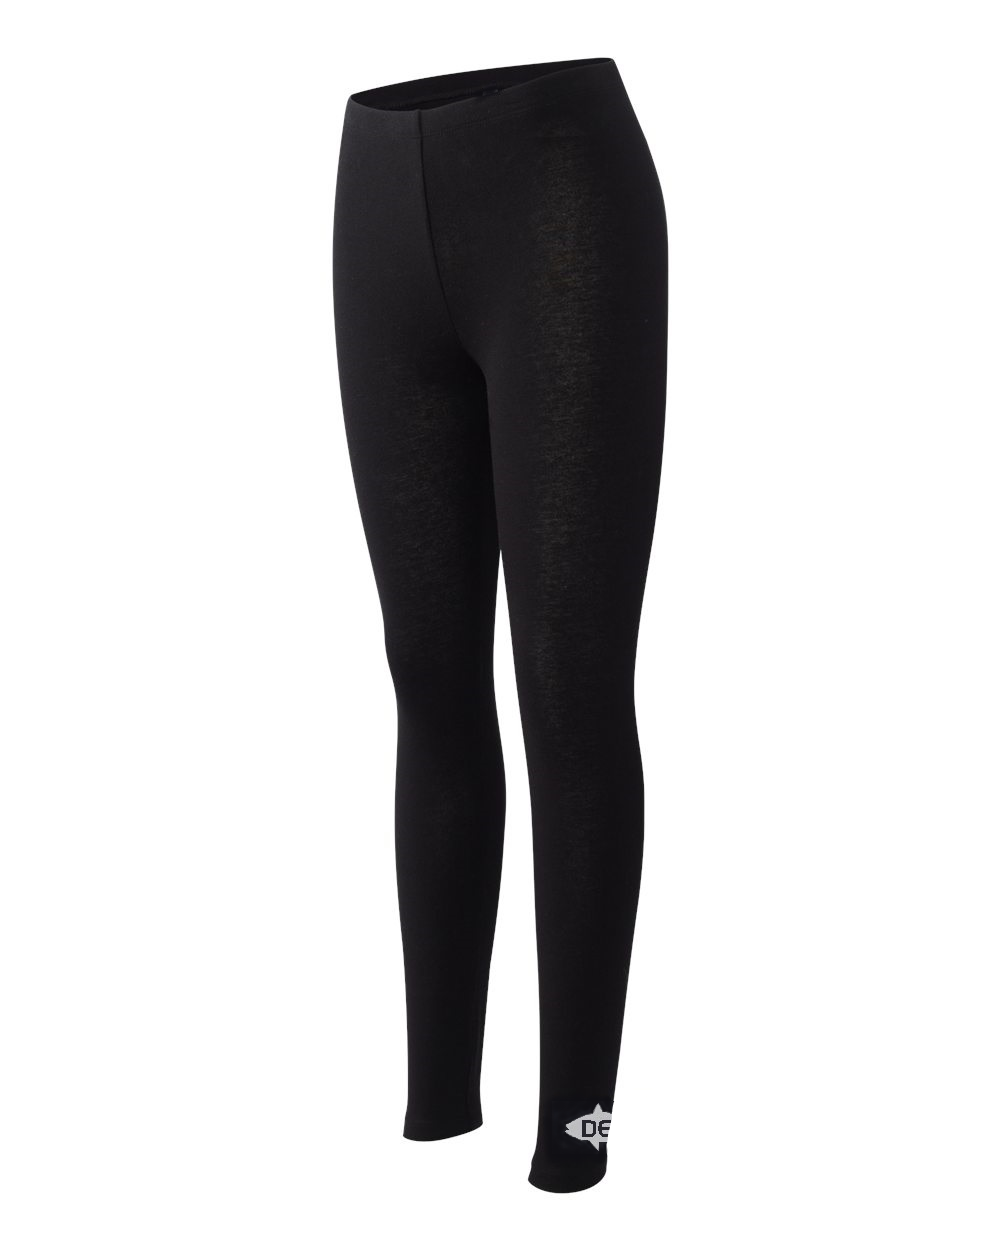 Ladies Black Tuna Yoga Pants